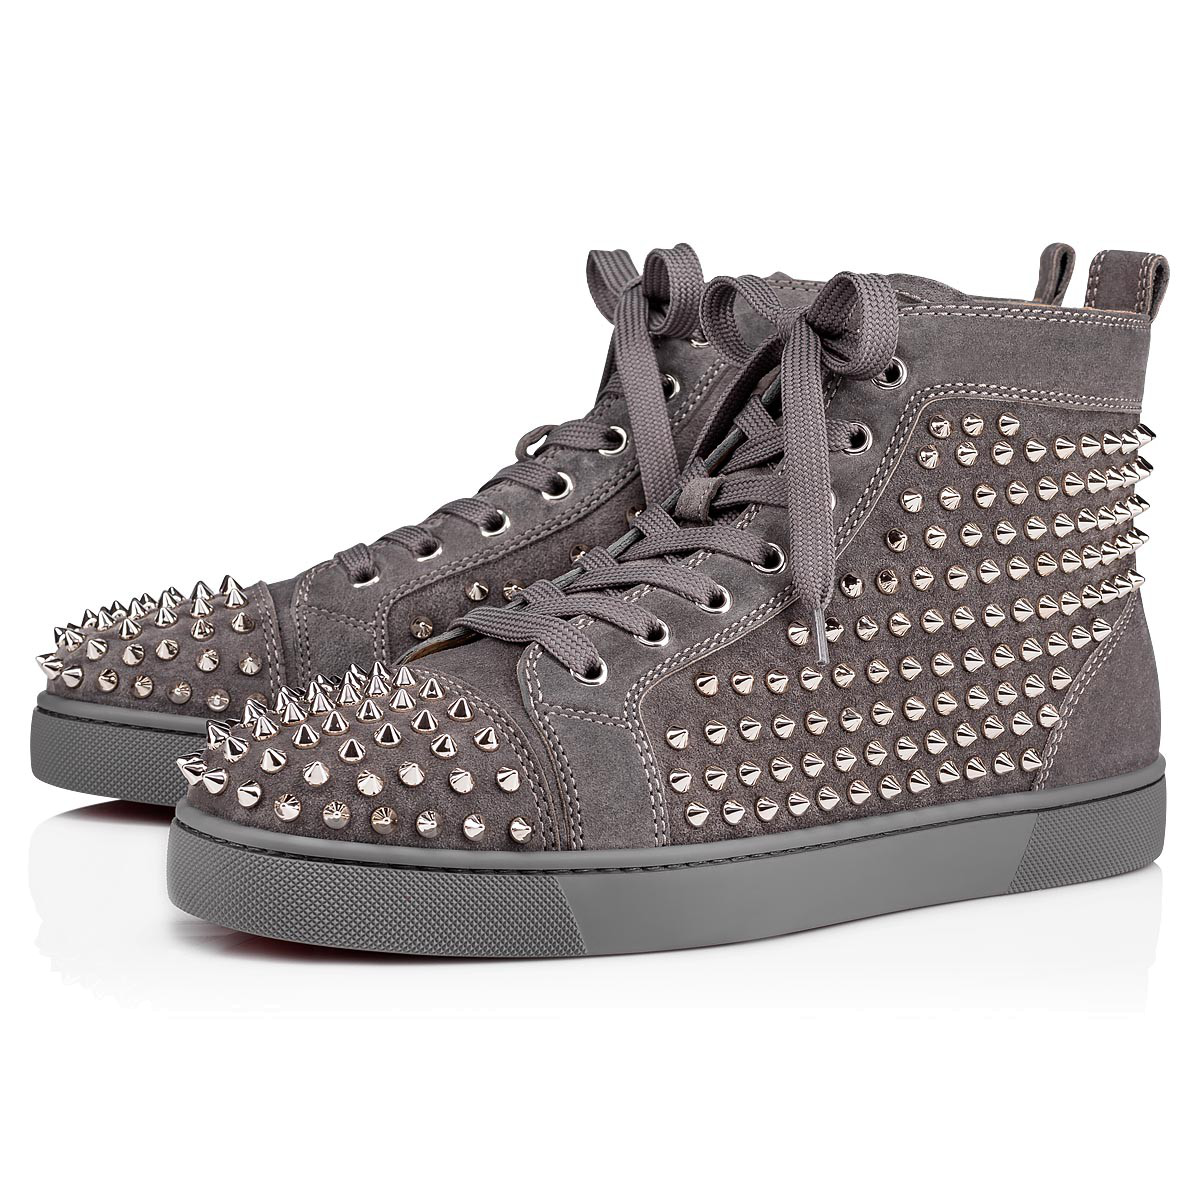 d199dd49aaca Christian Louboutin Louis Spike-Embellished High-Top Trainers In Grey-Blue